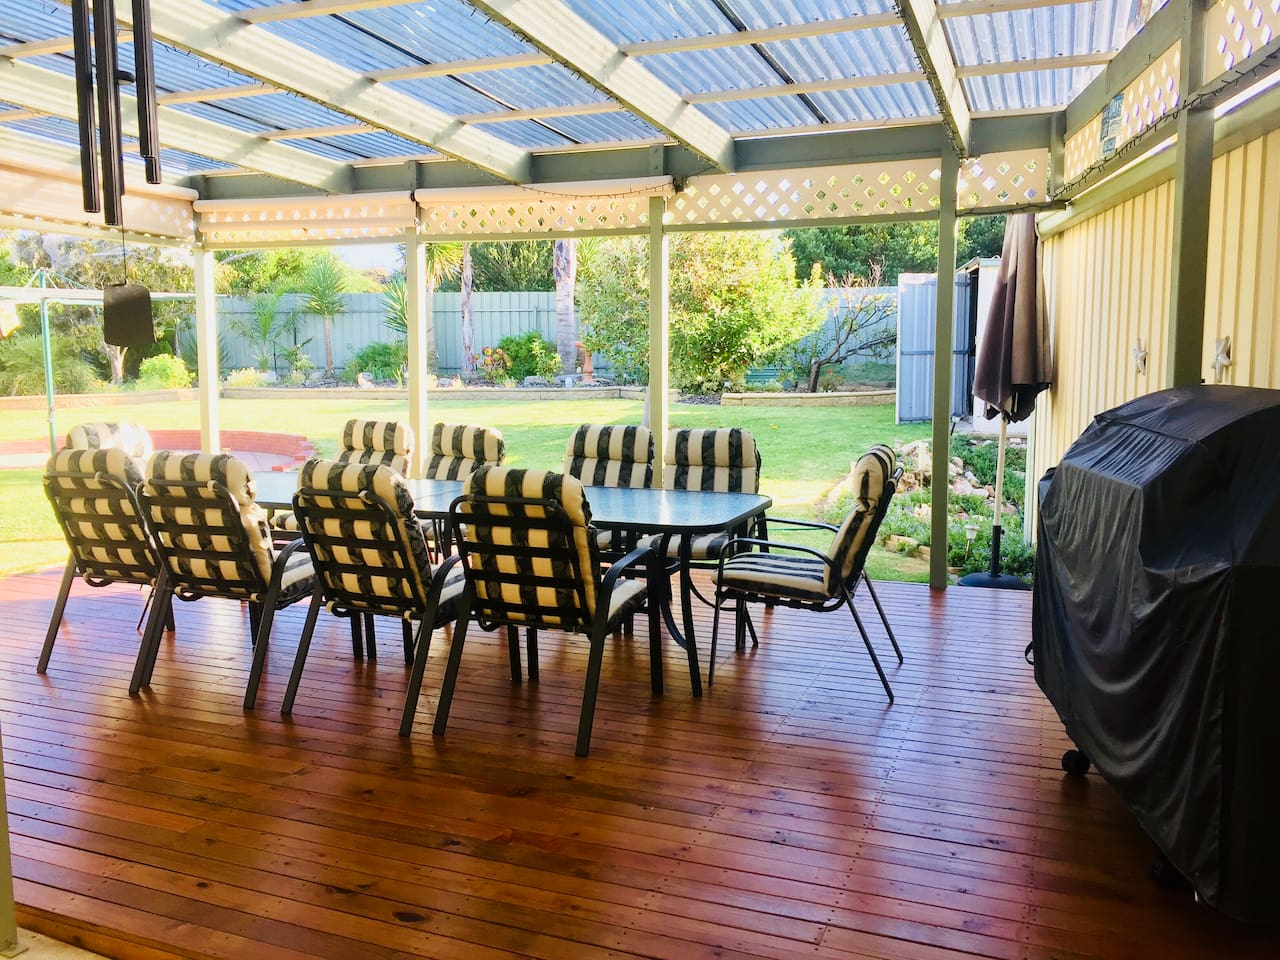 Outdoor entertaining undercover with bbq and gas heating for the cooler nights .